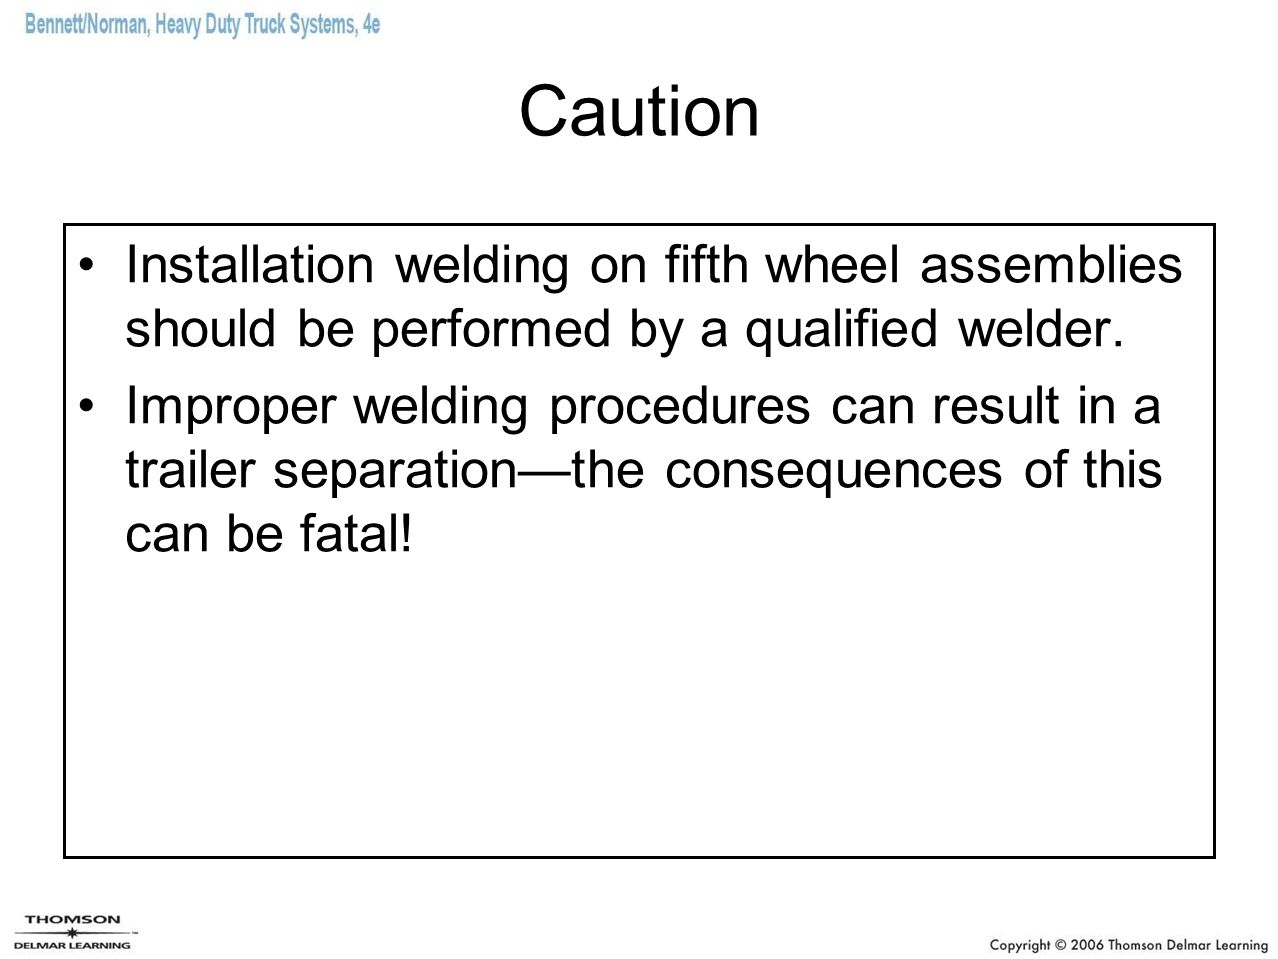 Caution Installation welding on fifth wheel assemblies should be performed by a qualified welder.